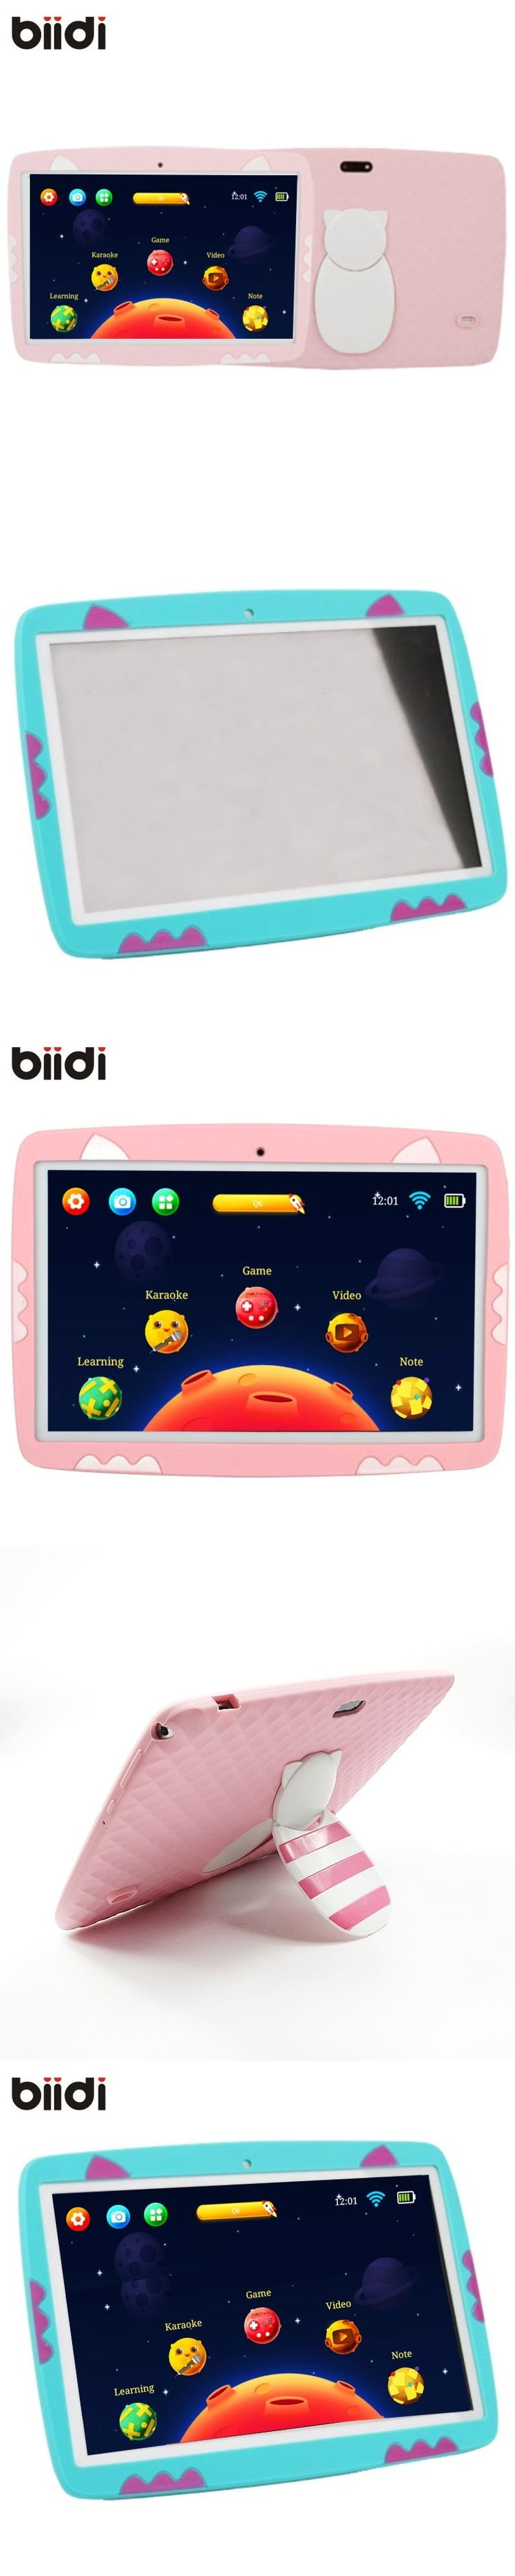 """biidi Hot 7155 Free Shipping Android 10 inch children's tablet 1GB of RAM 16G rom 1280 * 800 quad core 10"""" WiFi Christmas gift"""